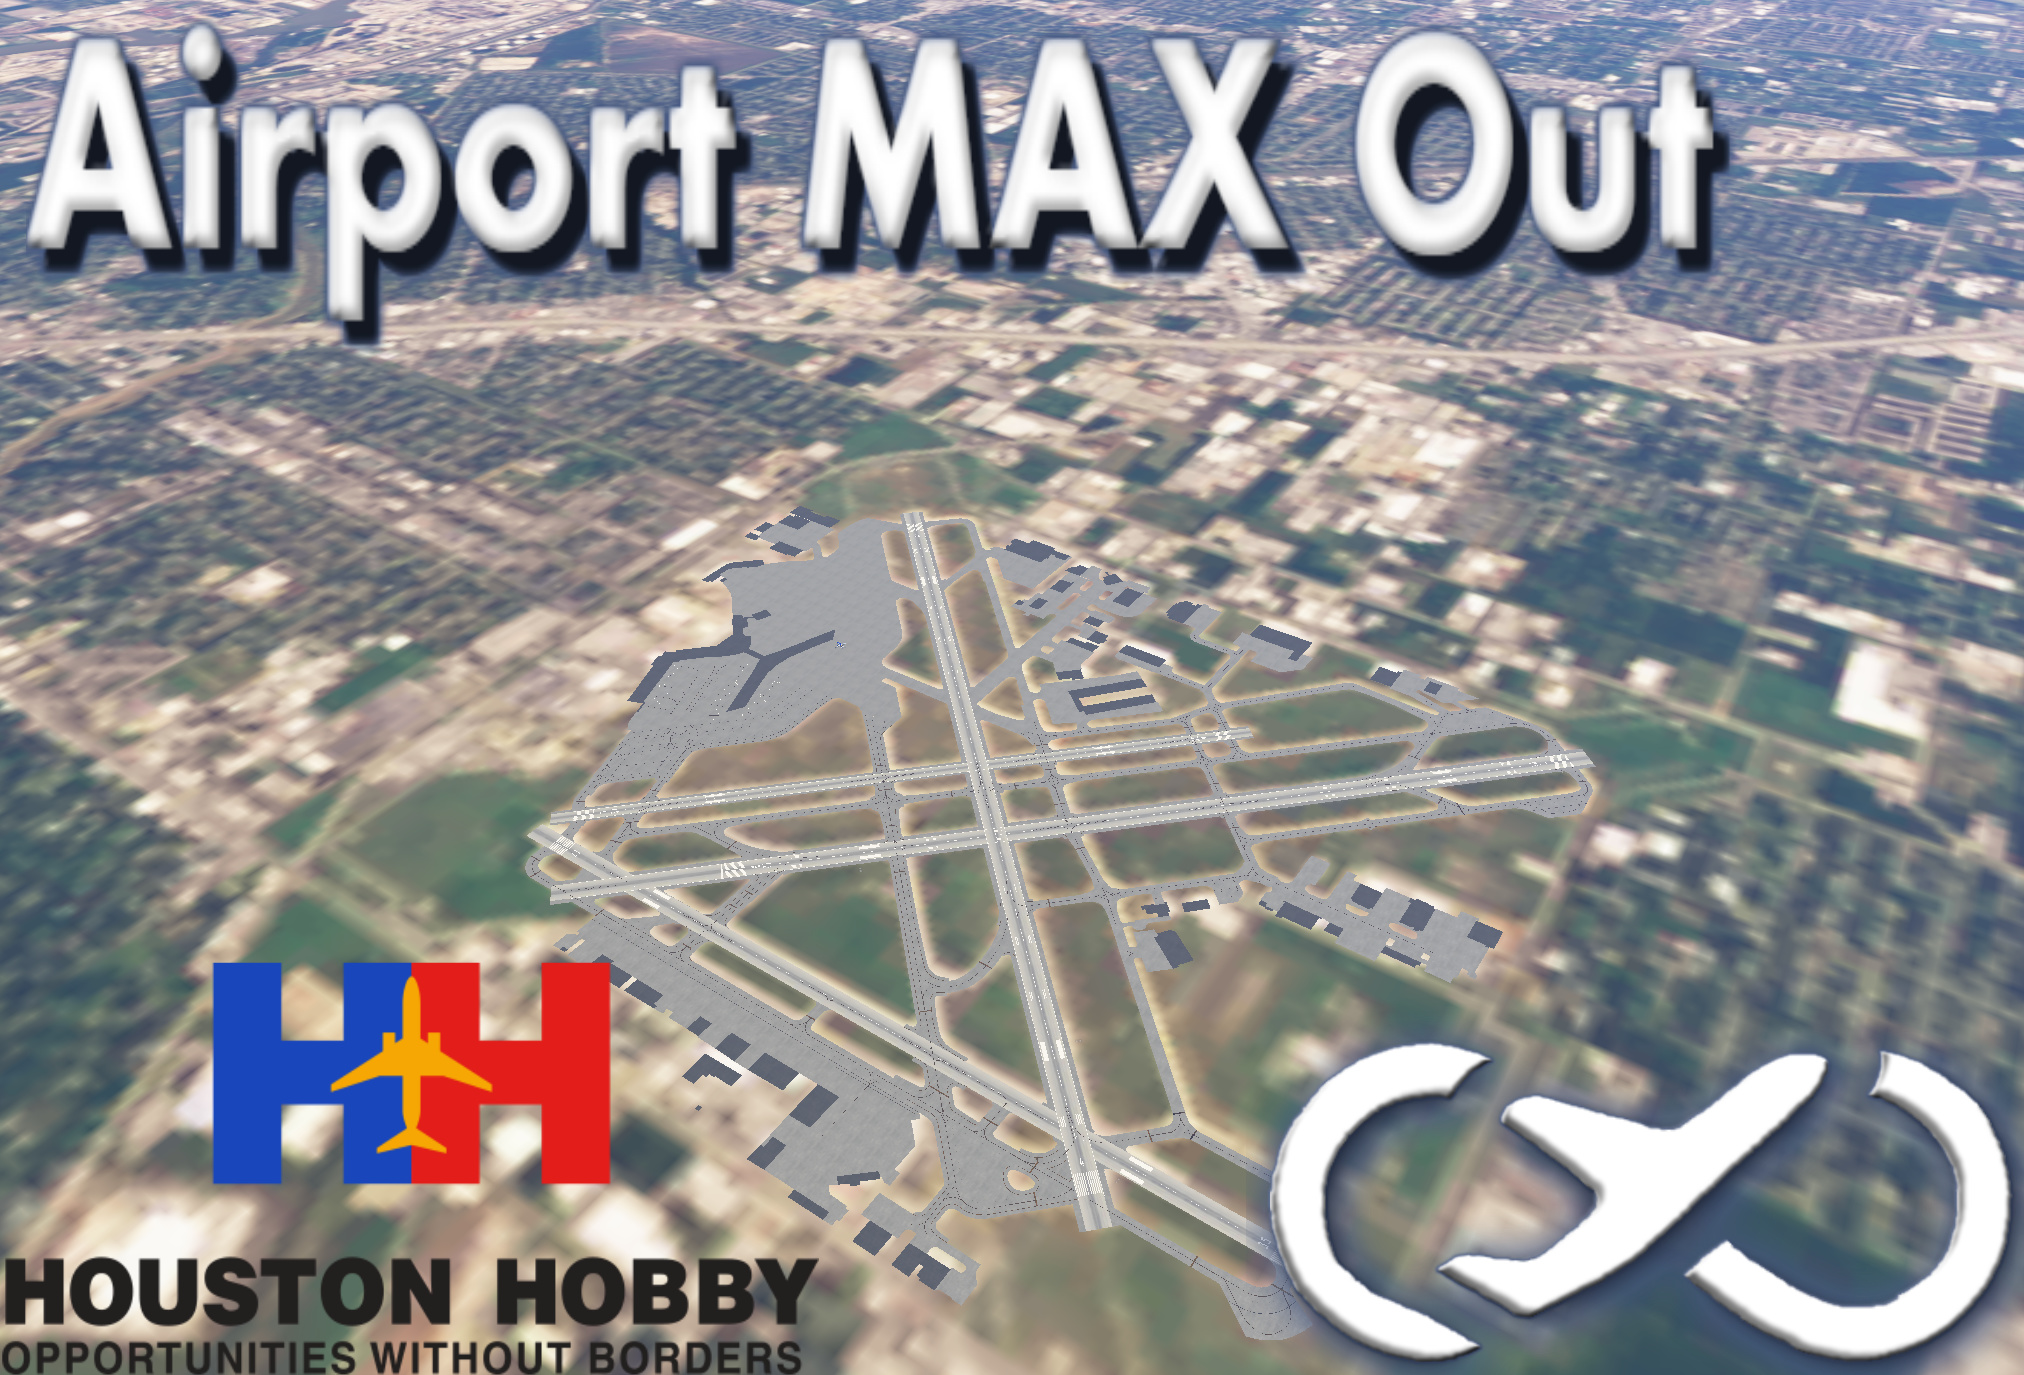 Airport MAX Out Houston Hobby